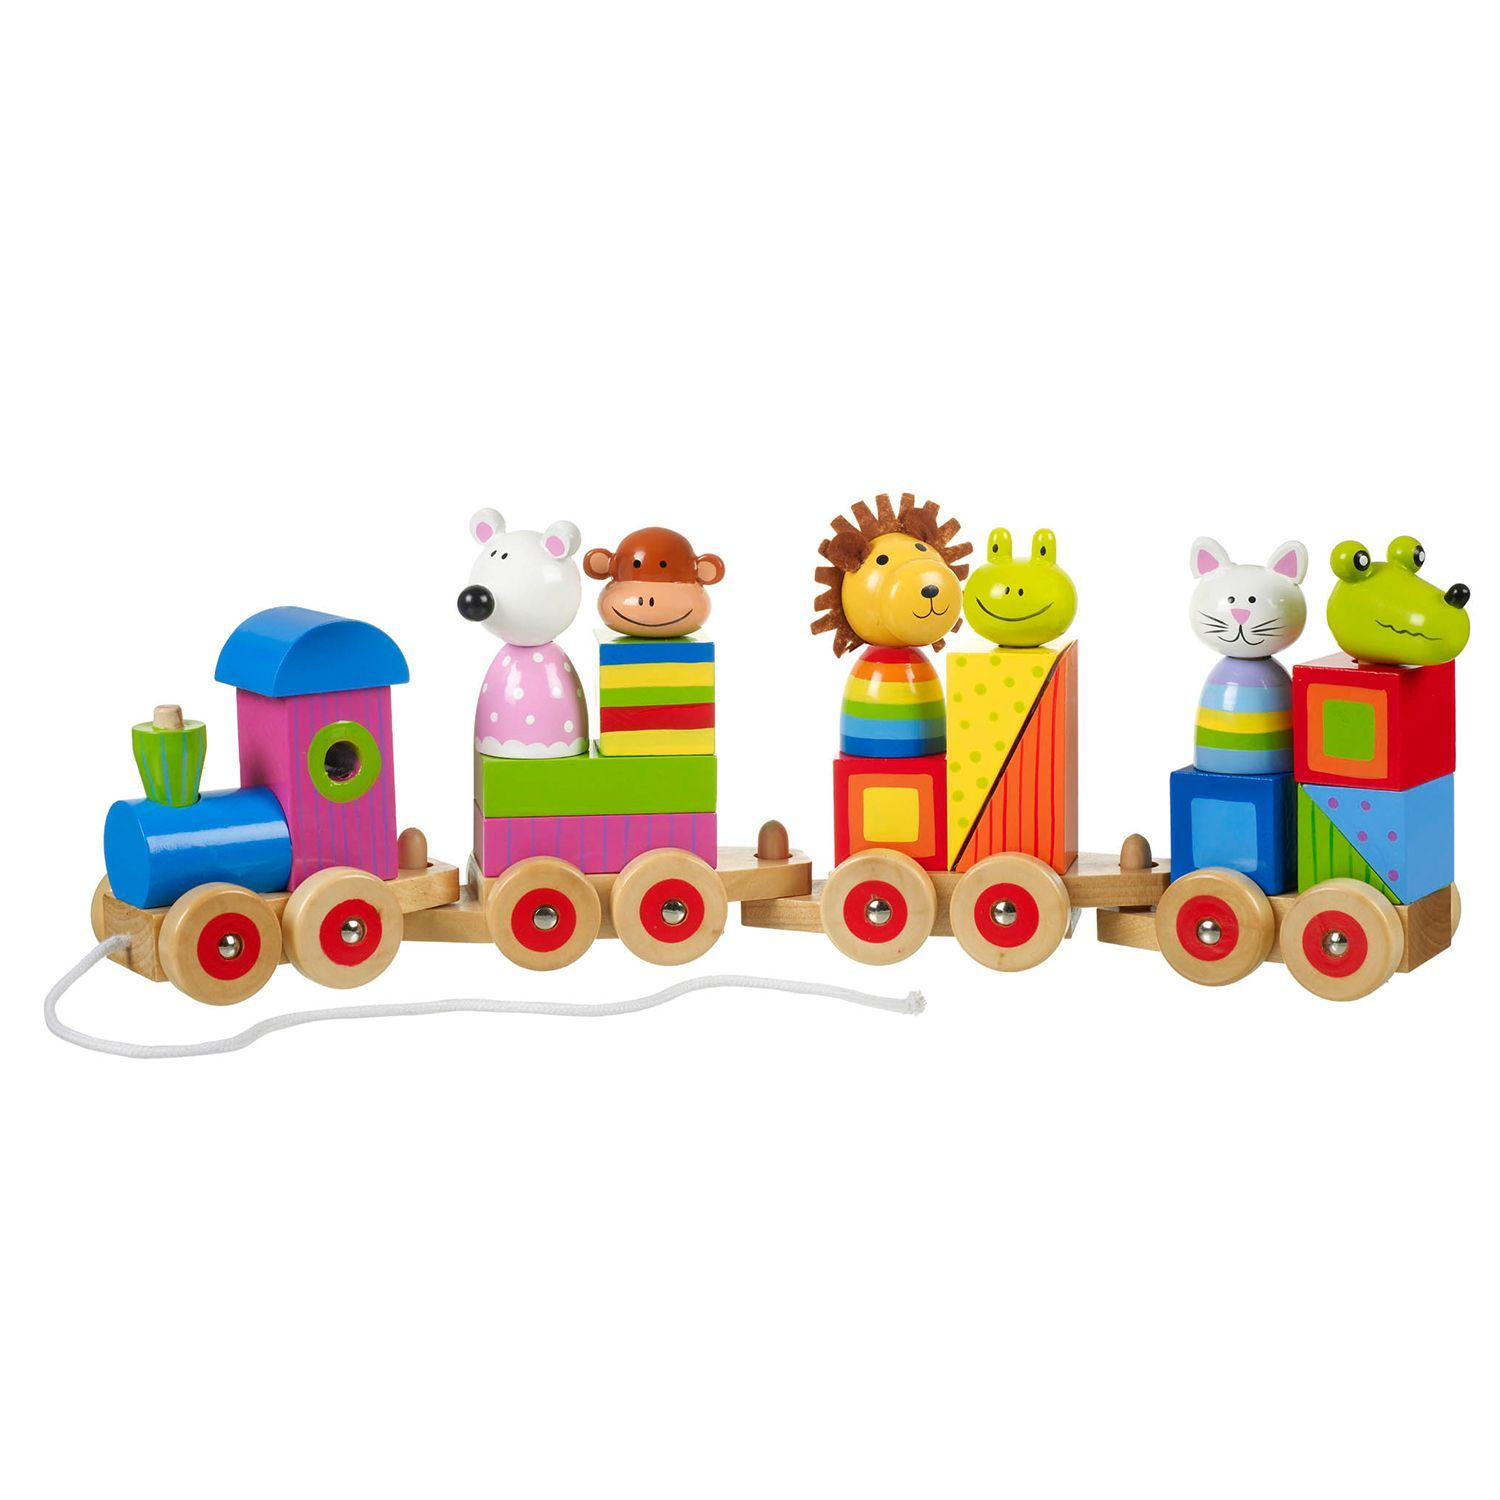 Keep your child delighted and amused with this fun wooden train